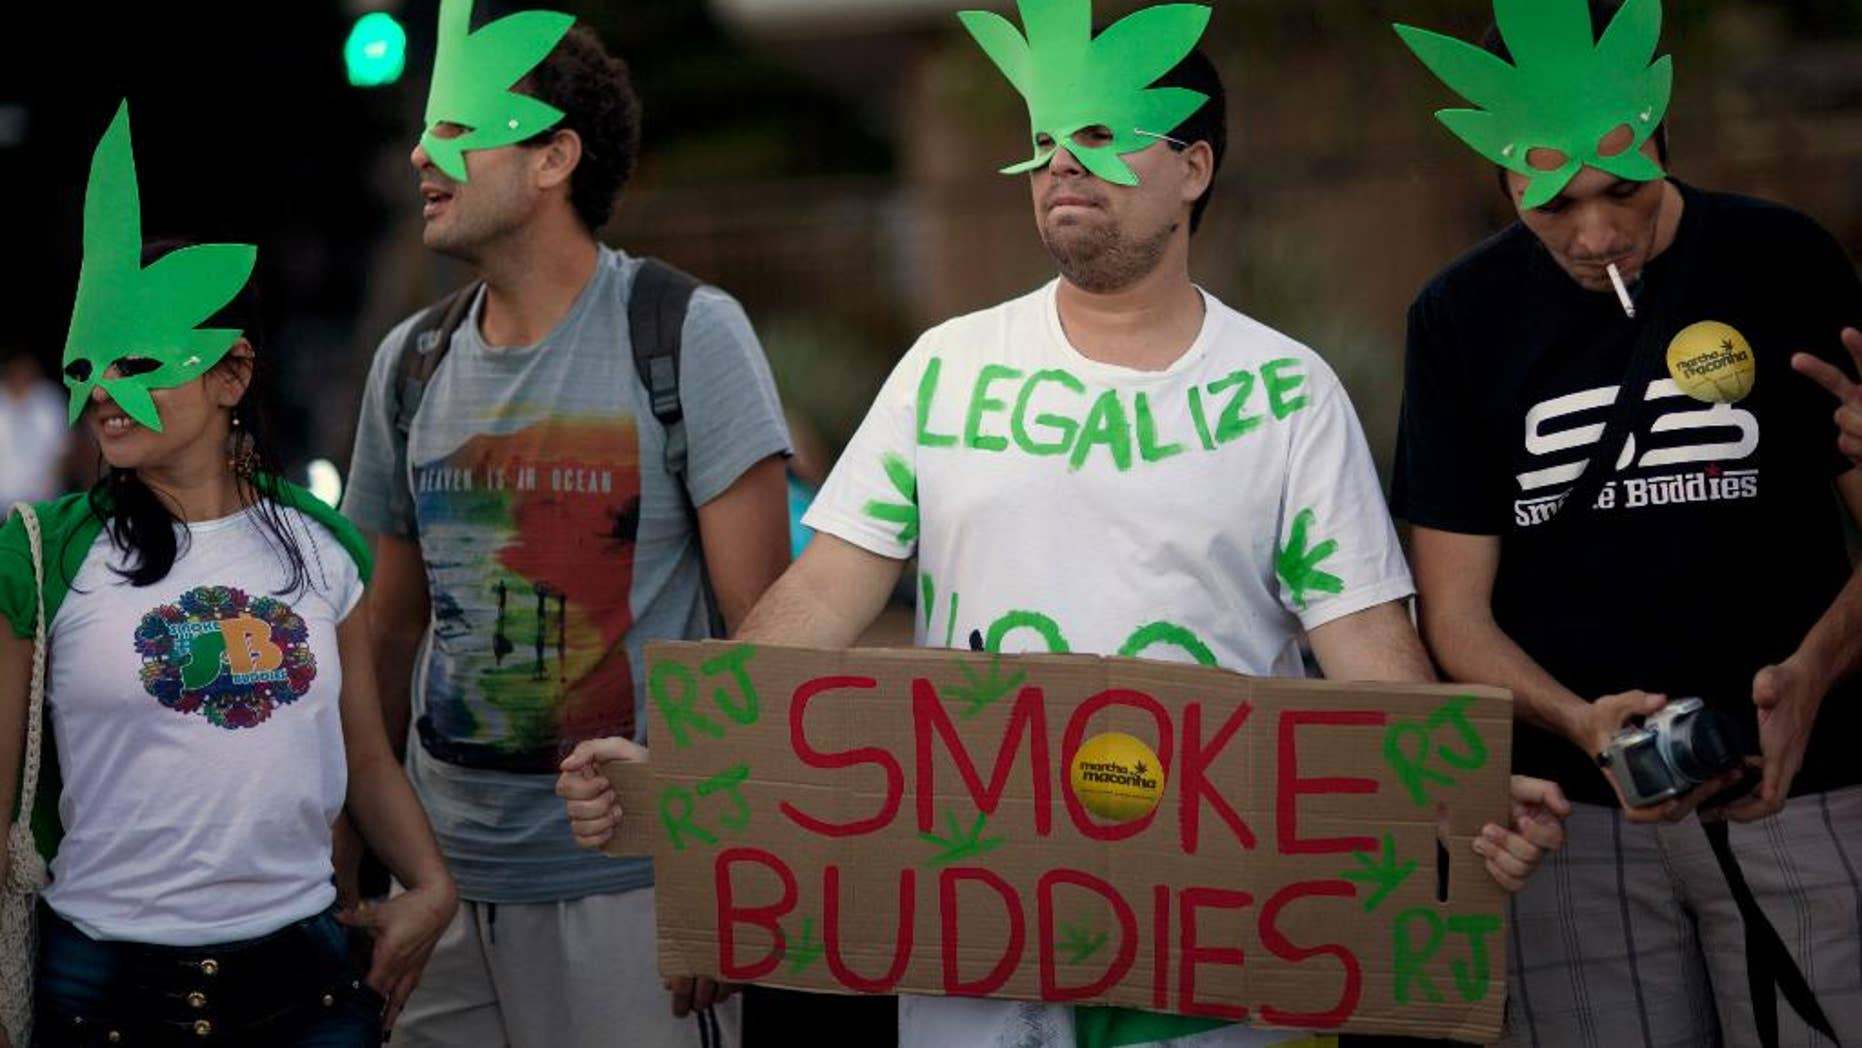 FILE - In this May 11, 2013 file photo, demonstrators wear cannabis shaped masks to support the legalization of marijuana in Rio de Janeiro, Brazil, during a march marking the 32 anniversary of Jamaican musician Bob Marley's death. Brazil's Supreme Court on Wednesday, Aug. 19, 2015 began debating a drug case that could lead to the decriminalization of drug possession for personal use. A final ruling is not expected for several days. (AP Photo/Felipe Dana, File)